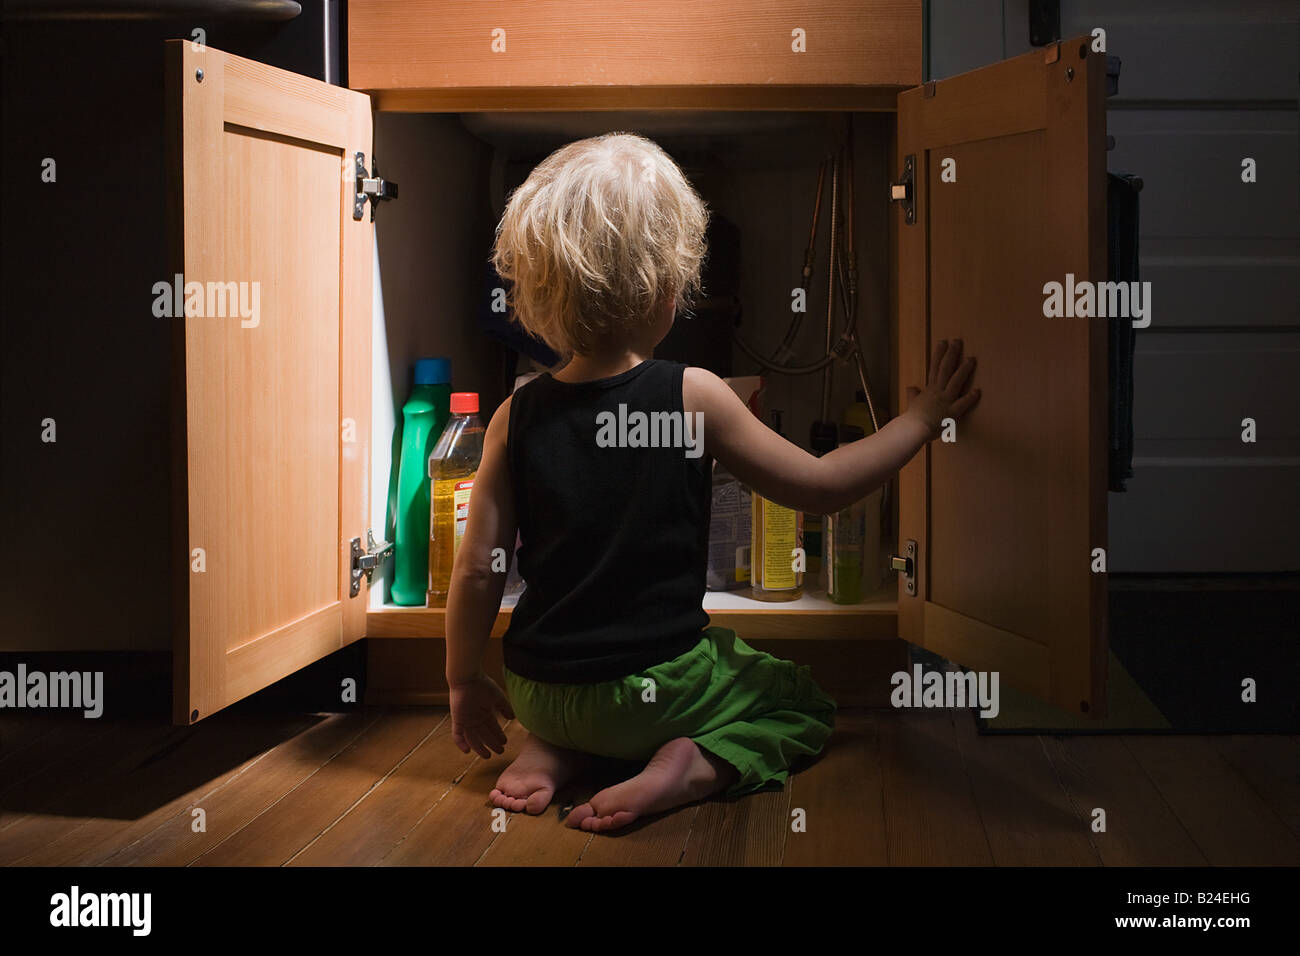 Little boy opening cupboard of cleaning products Stock Photo